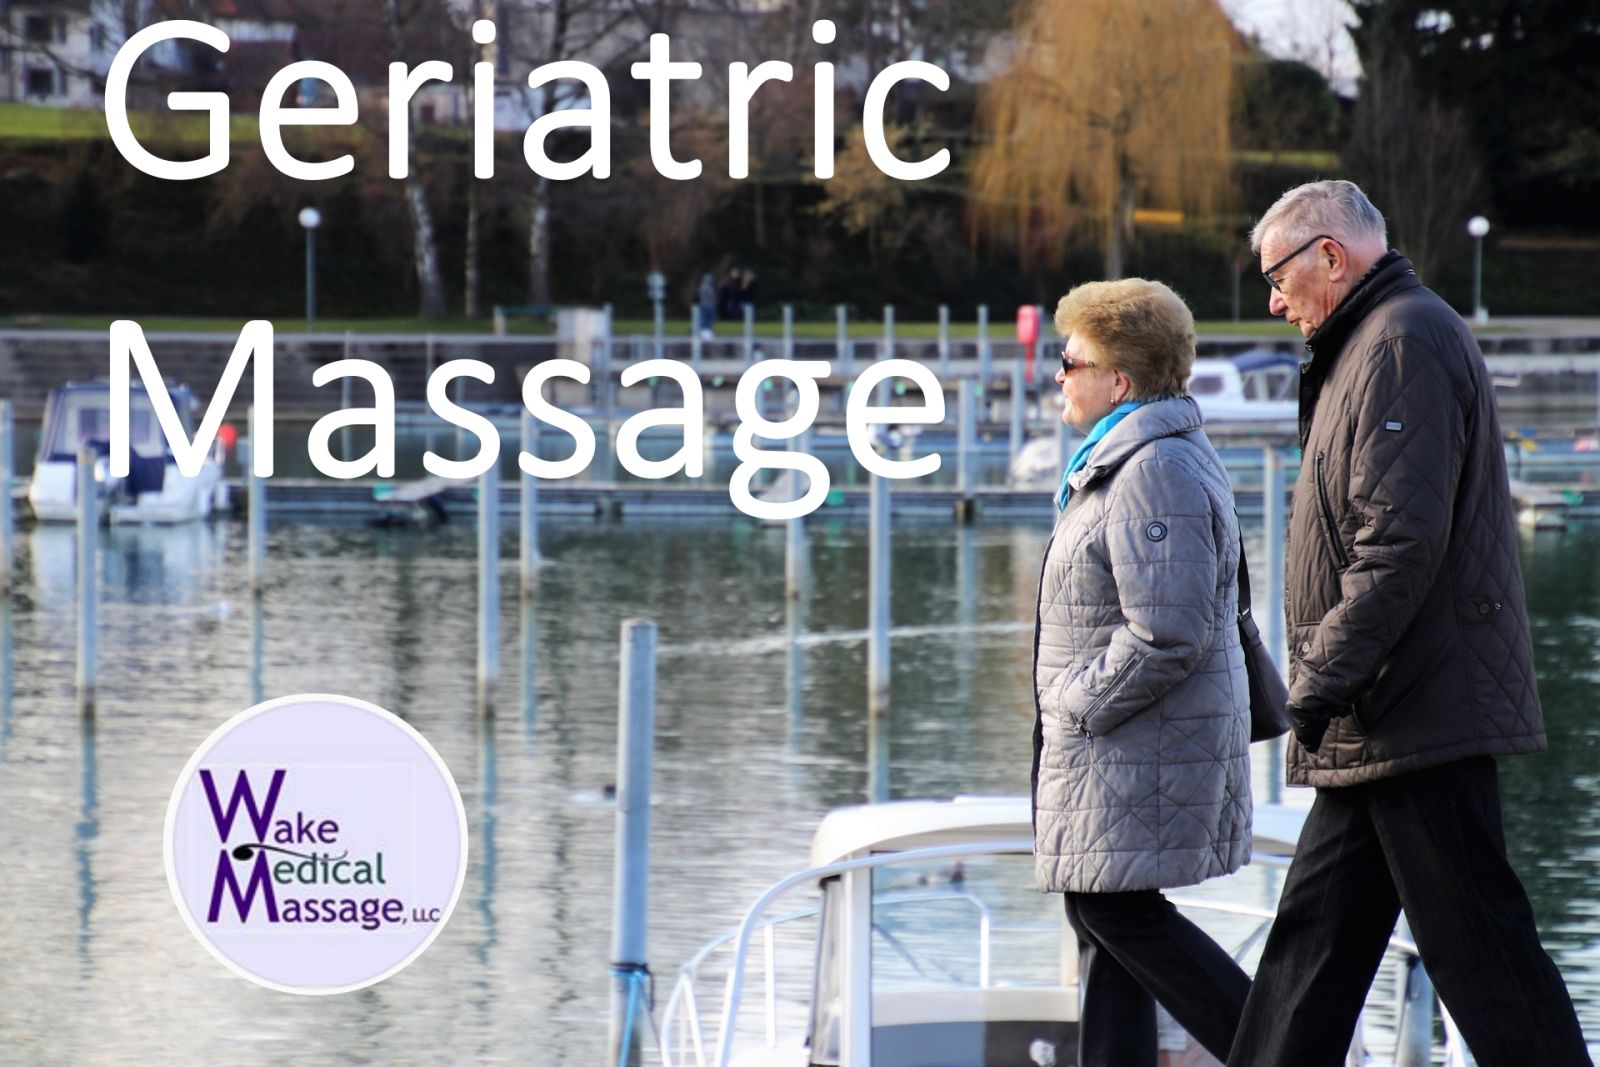 Geriatric Massage for the elderly.